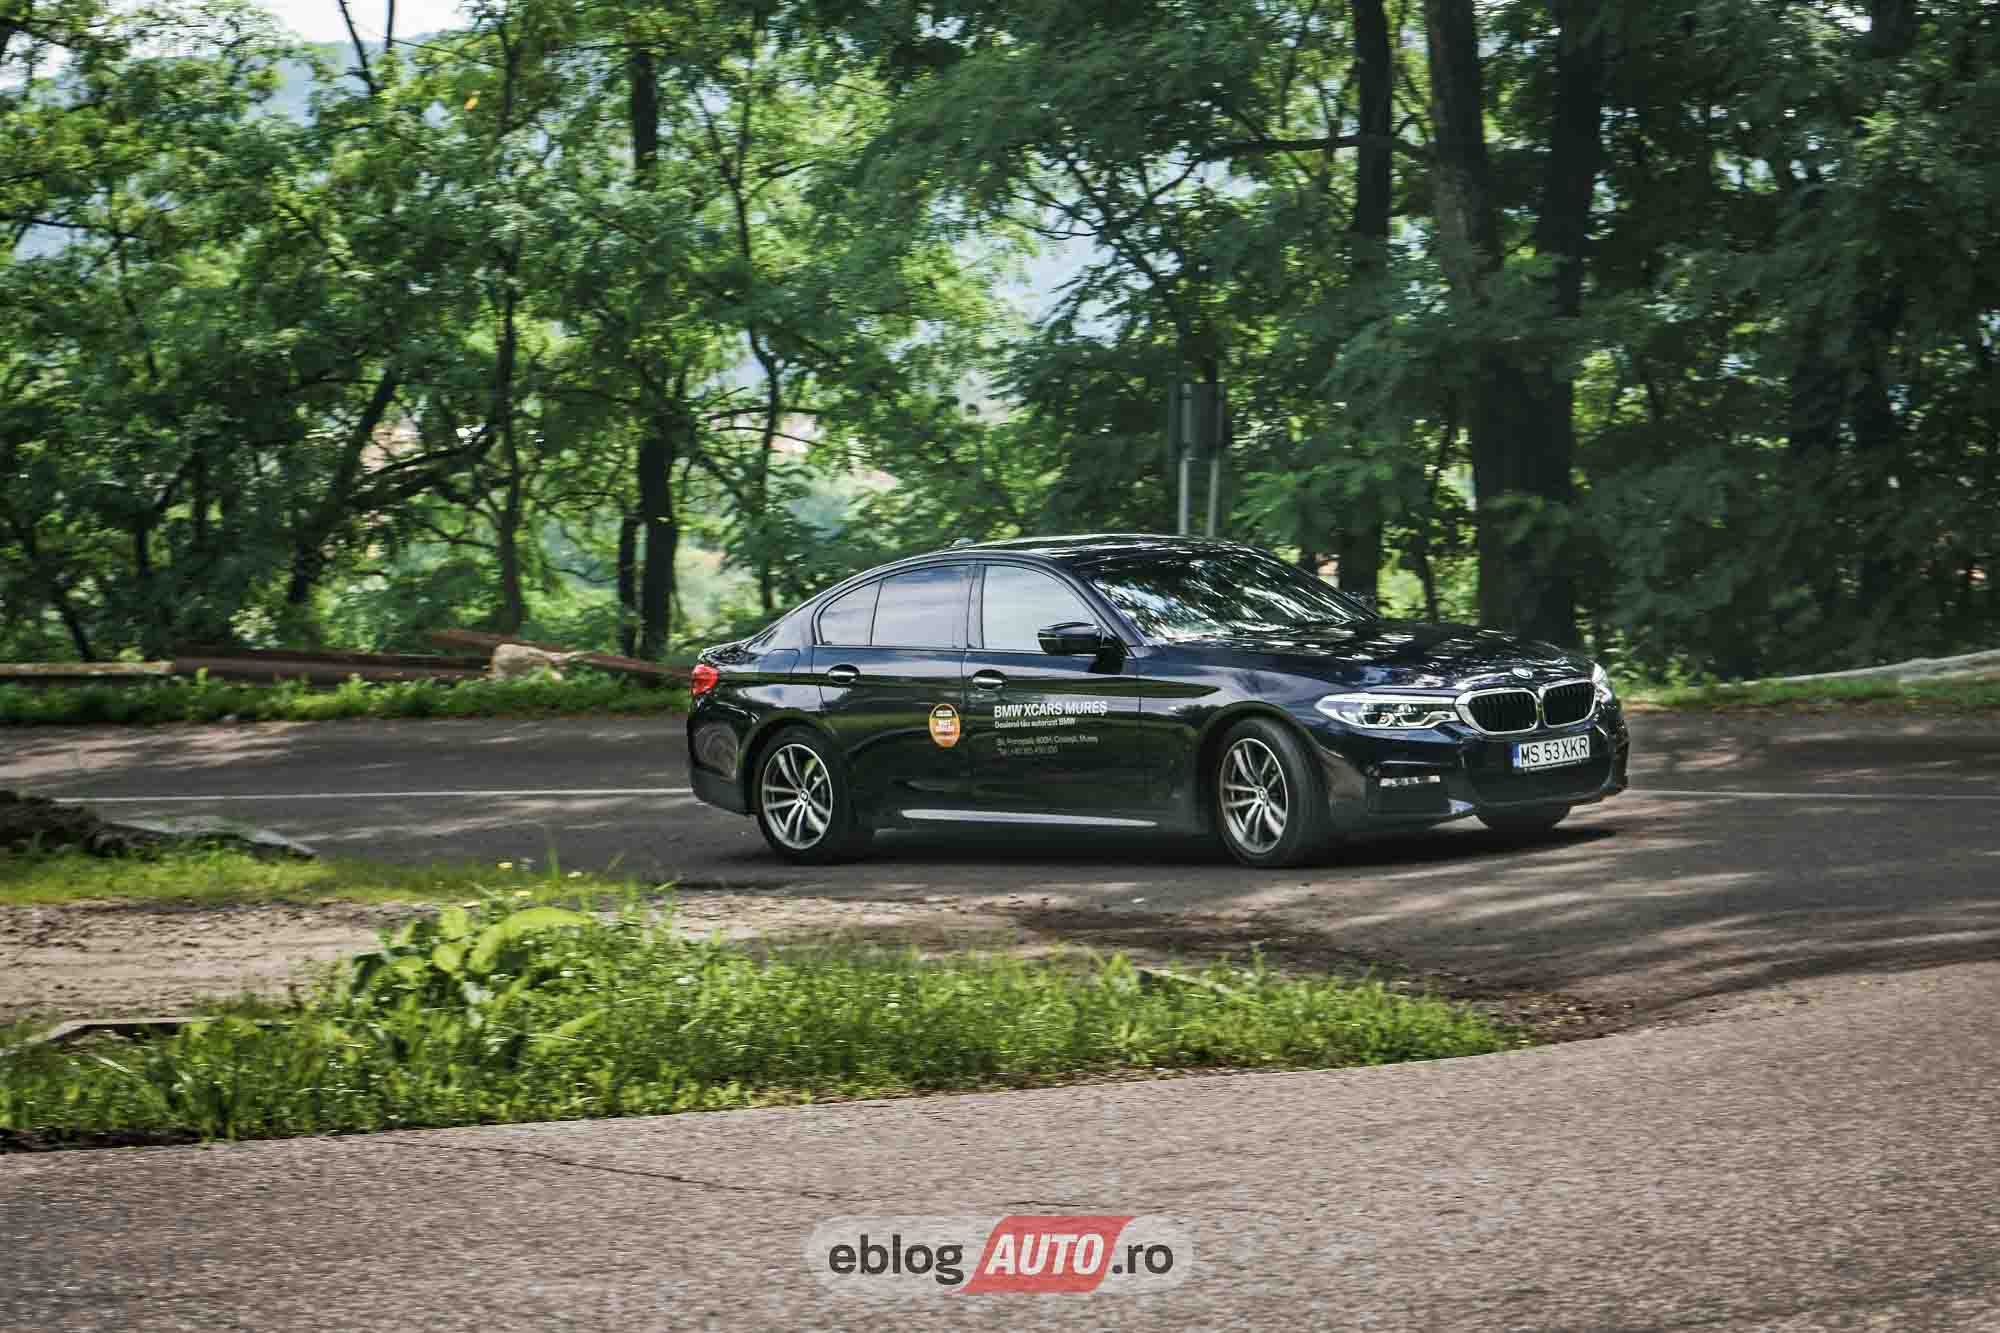 Test Drive Autovit.ro cu BMW 530d de la dealerul BMW XCARS MURES [VIDEO REVIEW]